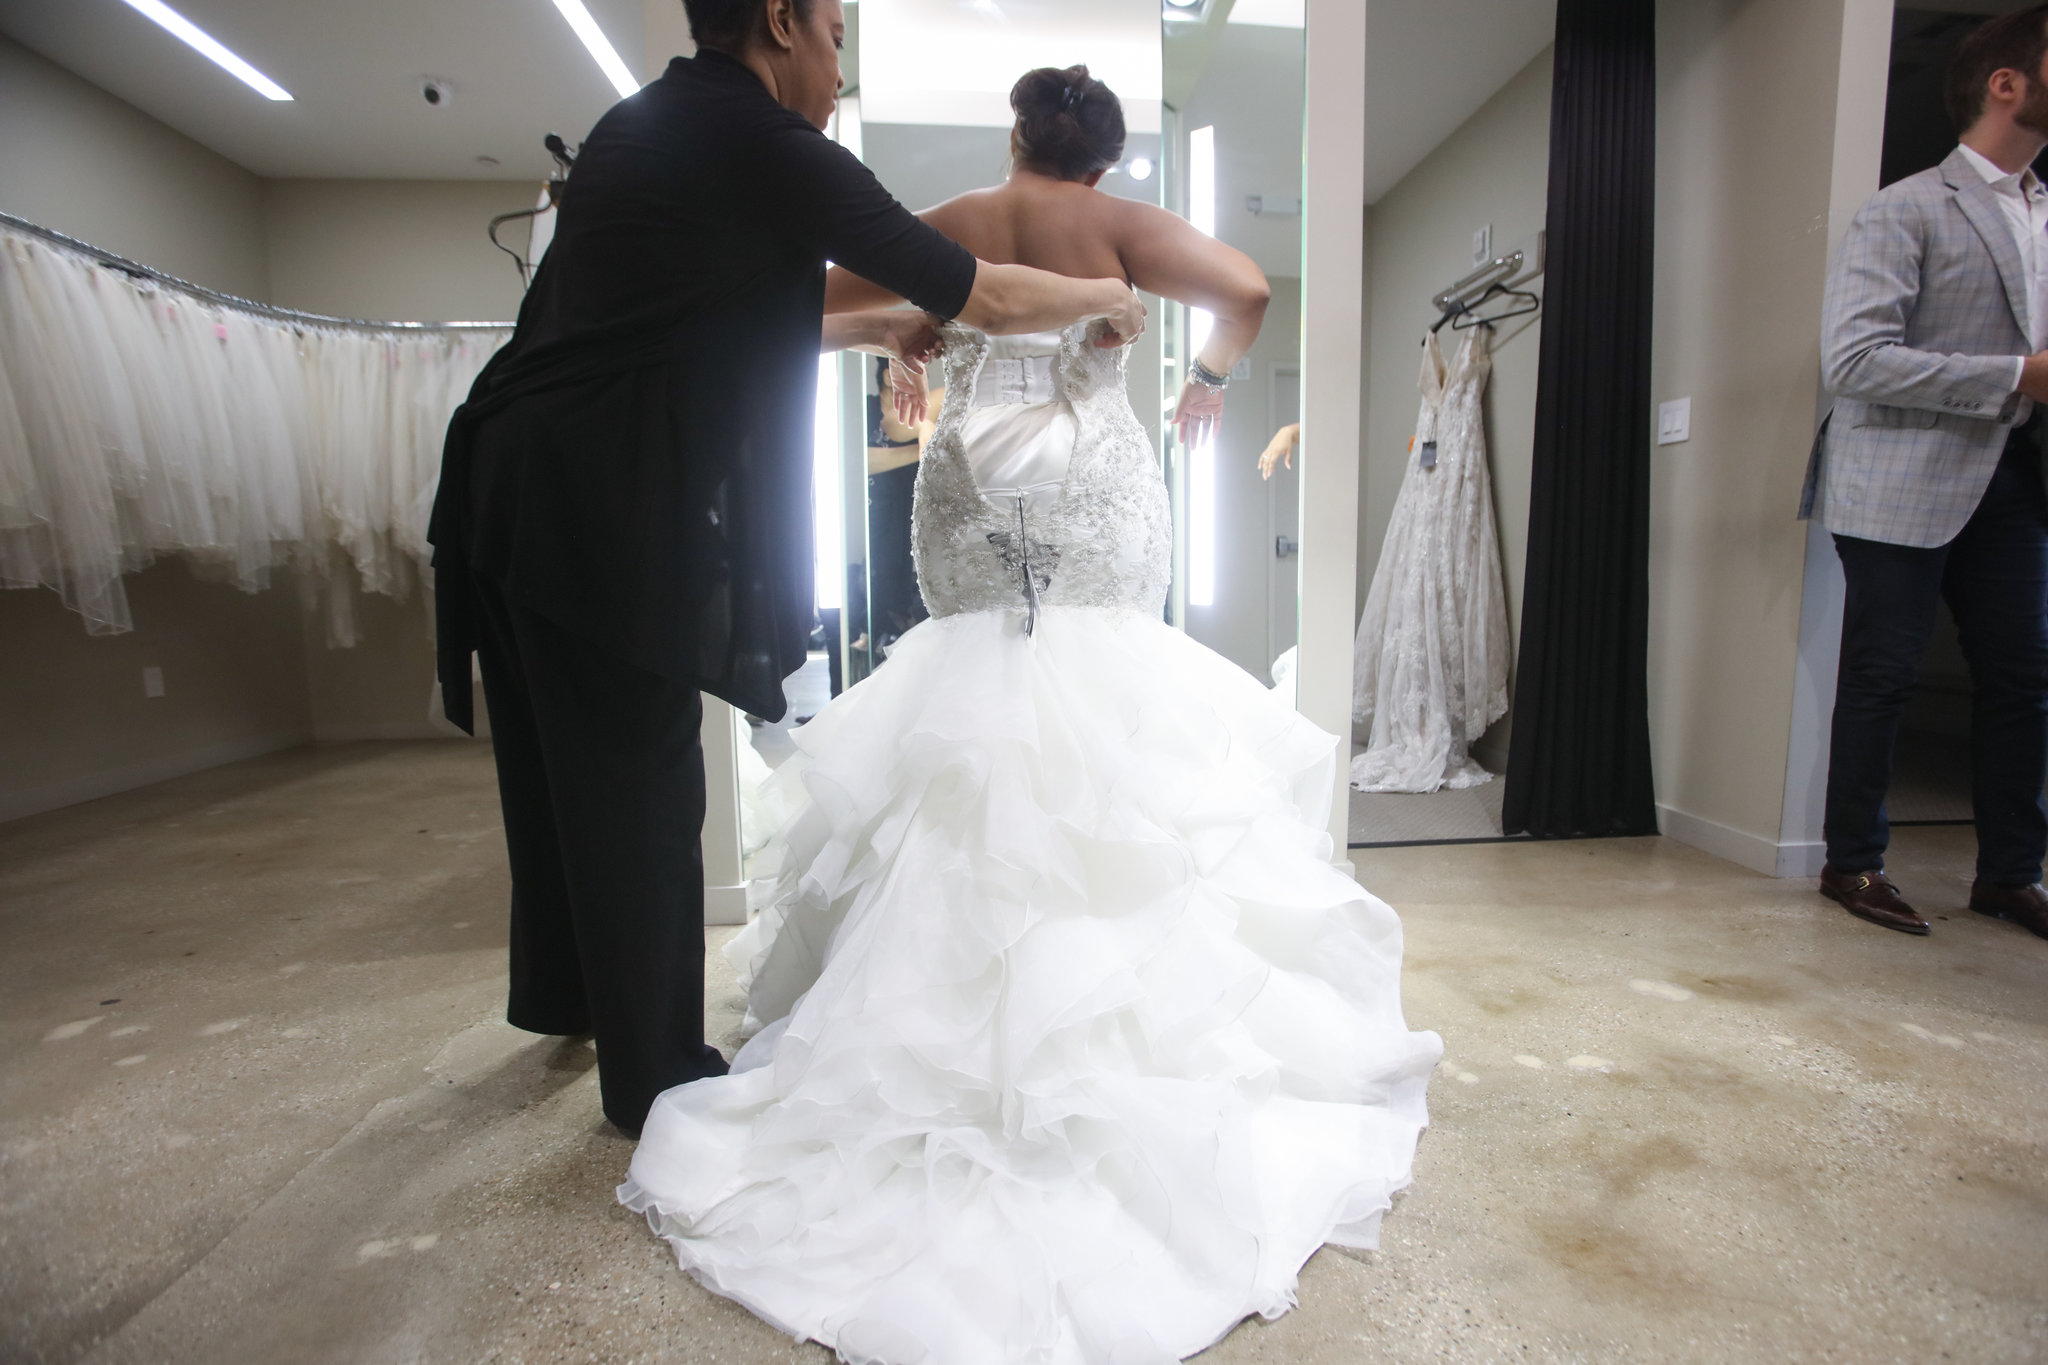 Dress Designers Add Options For Plus-Size Brides